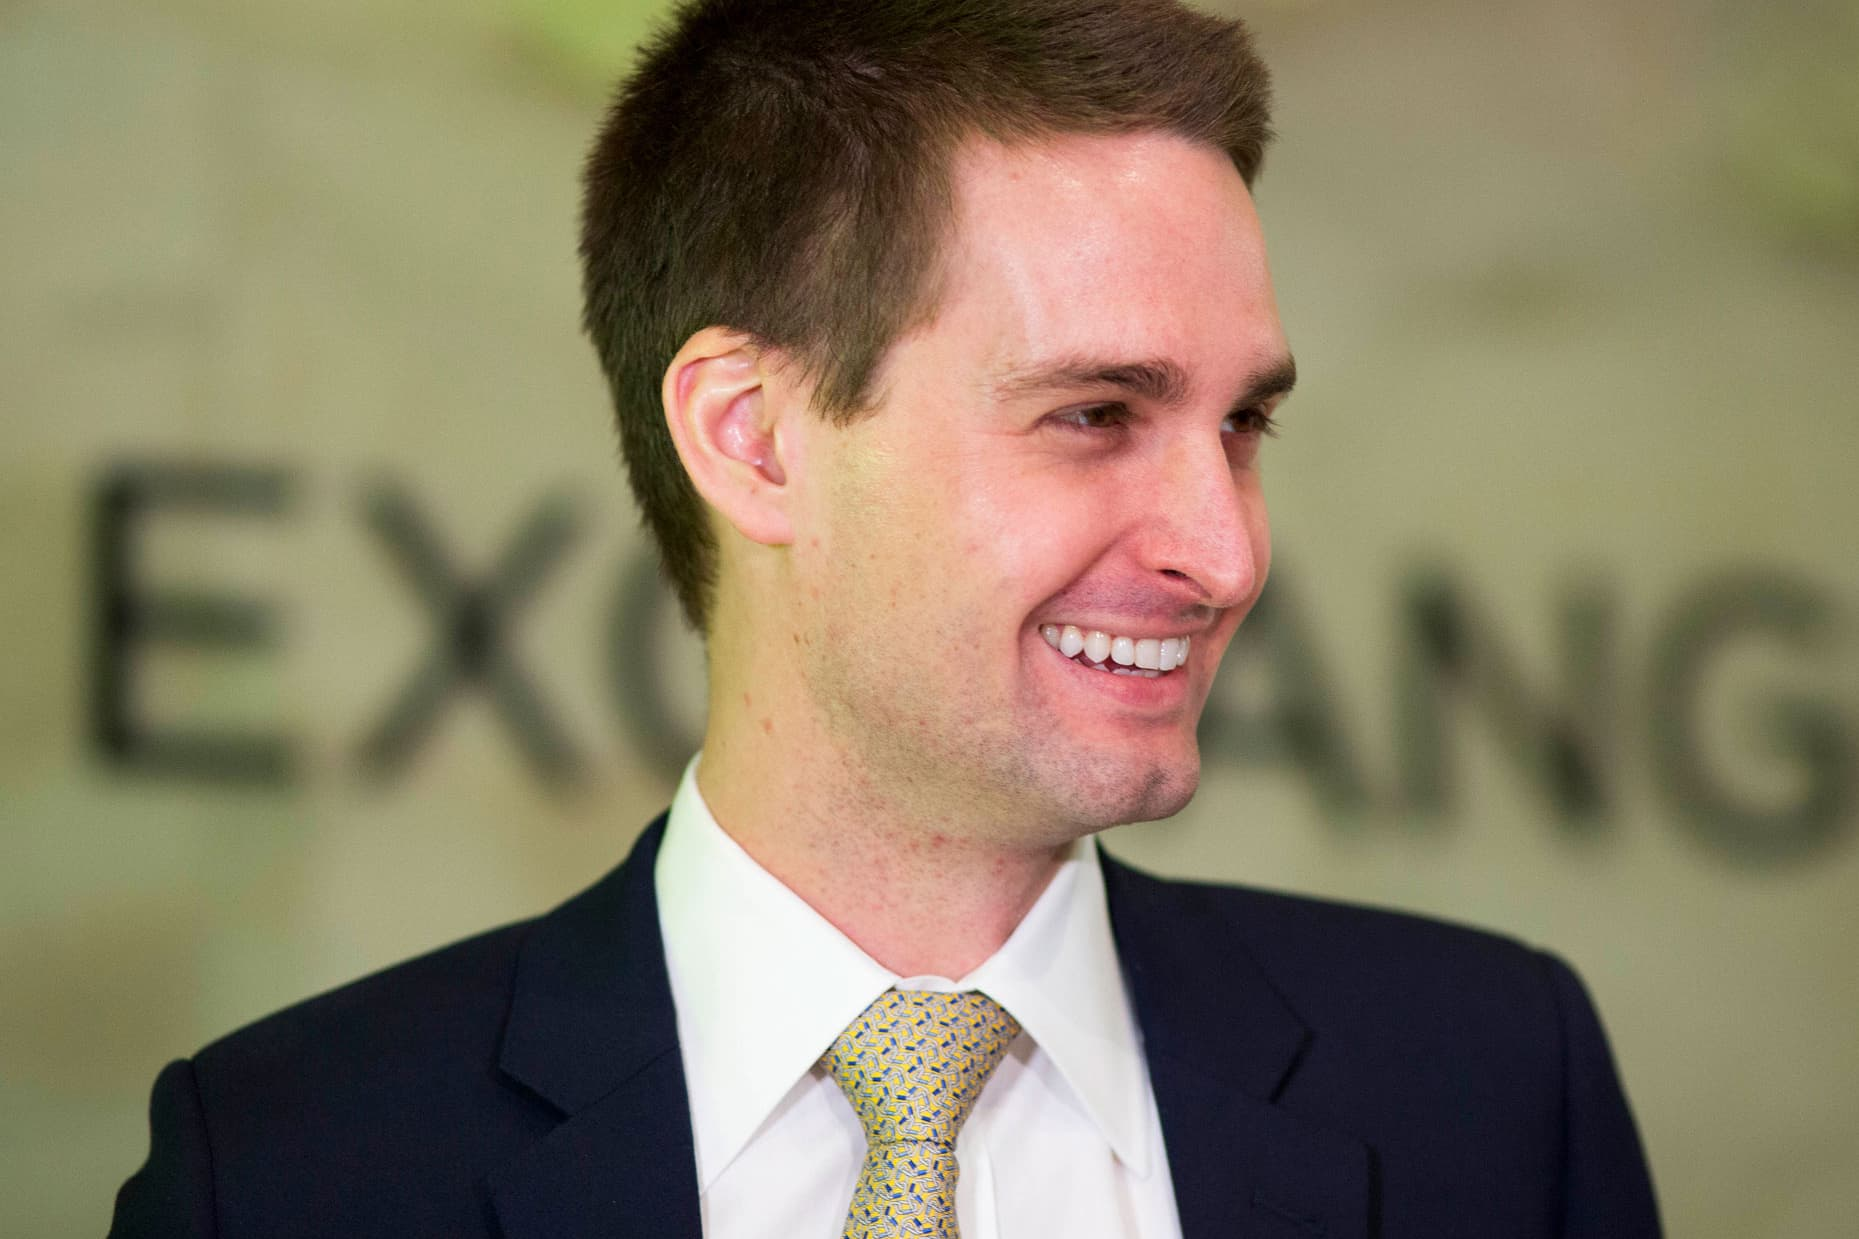 Snap Inc. CEO Evan Spiegel smiles before ringing the opening bell at the New York Stock Exchange as his company celebrates its IPO, Thursday, March 2, 2017.